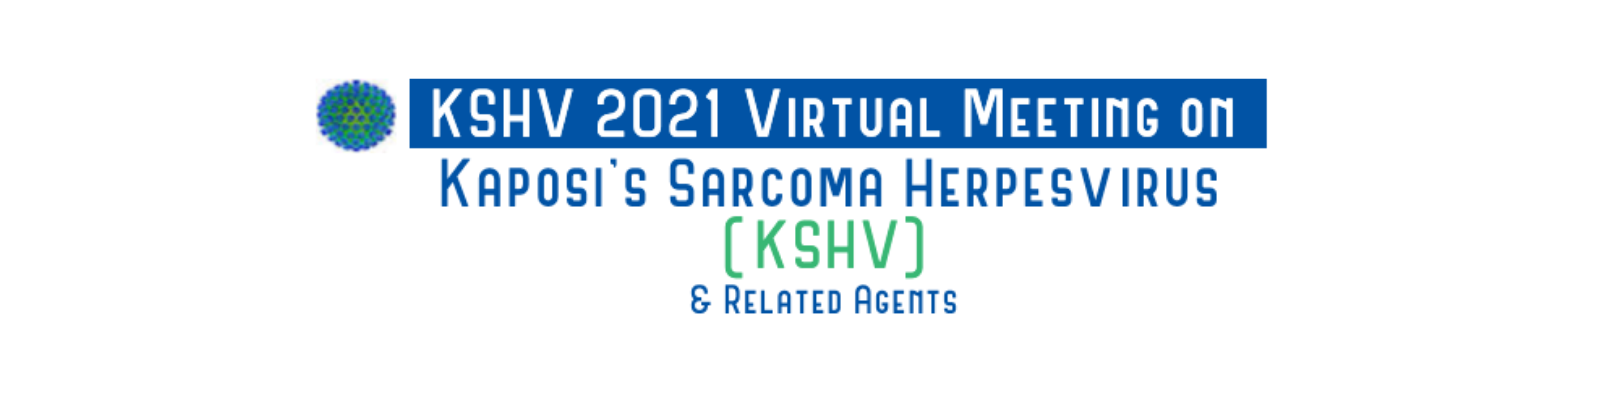 KSHV Abstract Submissions